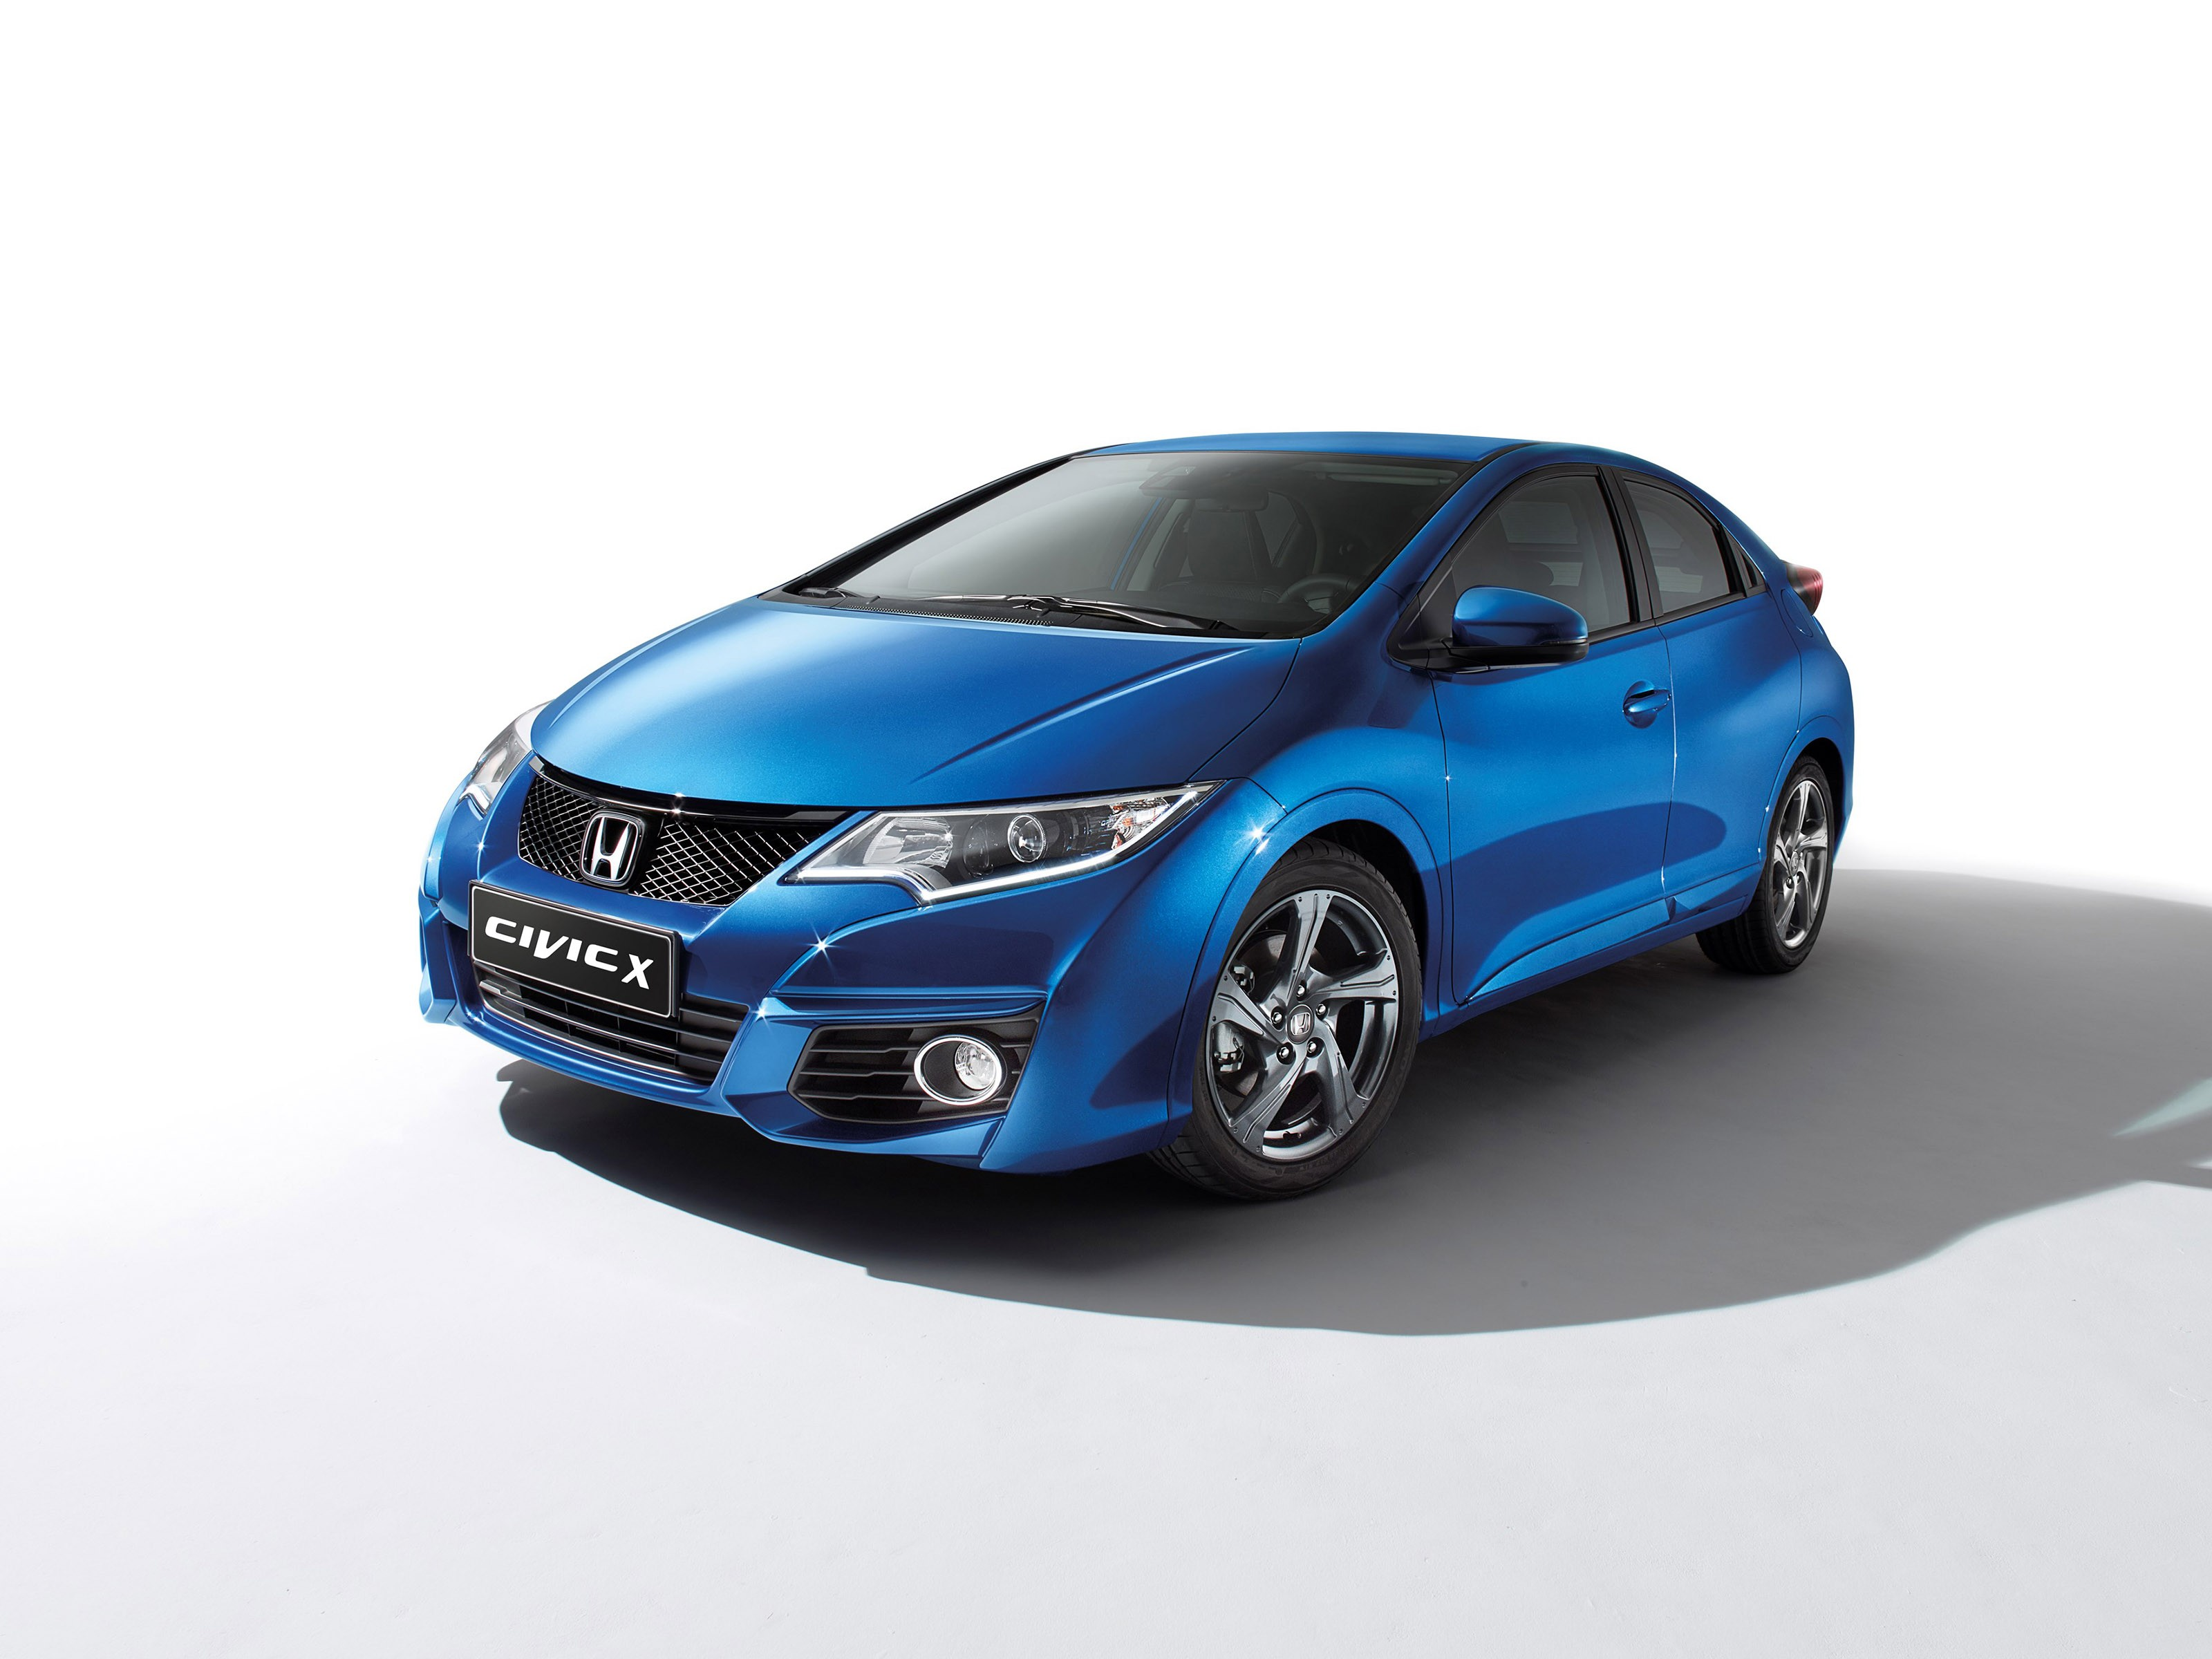 2016 Honda Civic X Edition